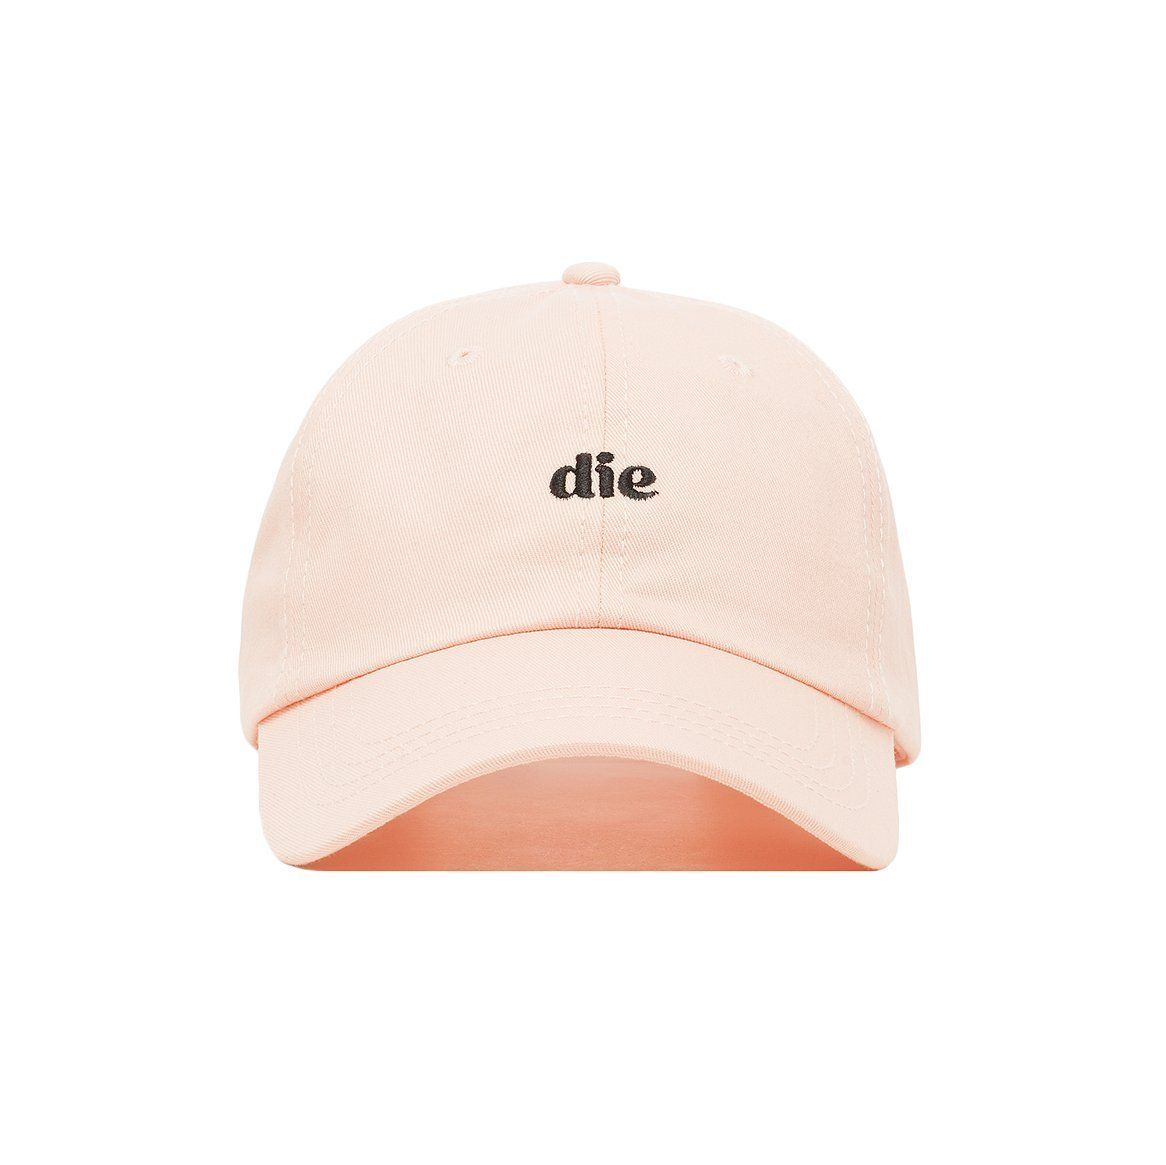 1b7e271e86d Buy buy on wallmart.win Premium Embroidered Pink die Hat - Baseball Cap  with Adjustable